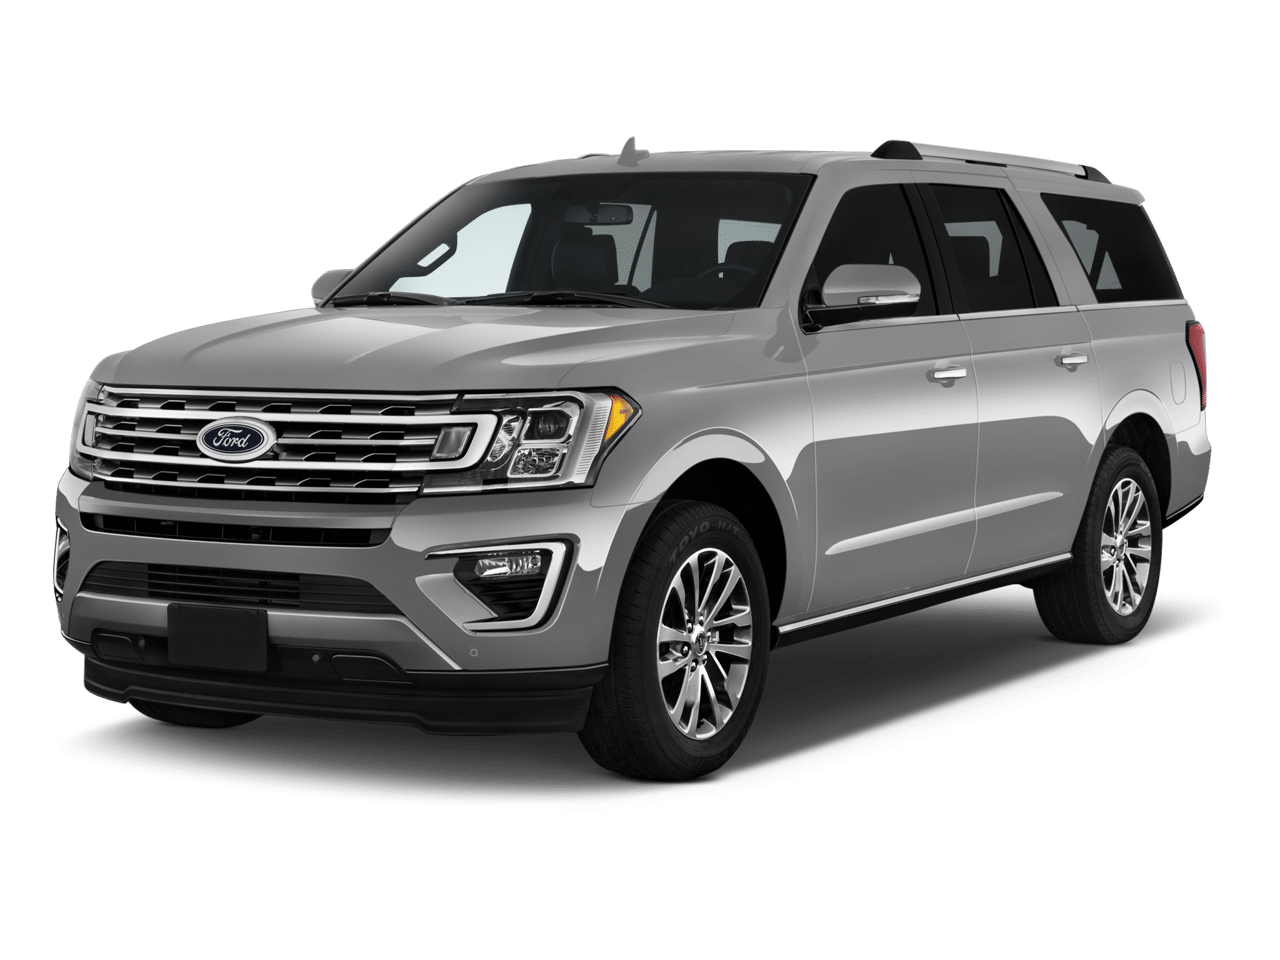 Full Size Suv Rental >> Full Size Suv Rental Pacific Car Rentals Vancouver Bc